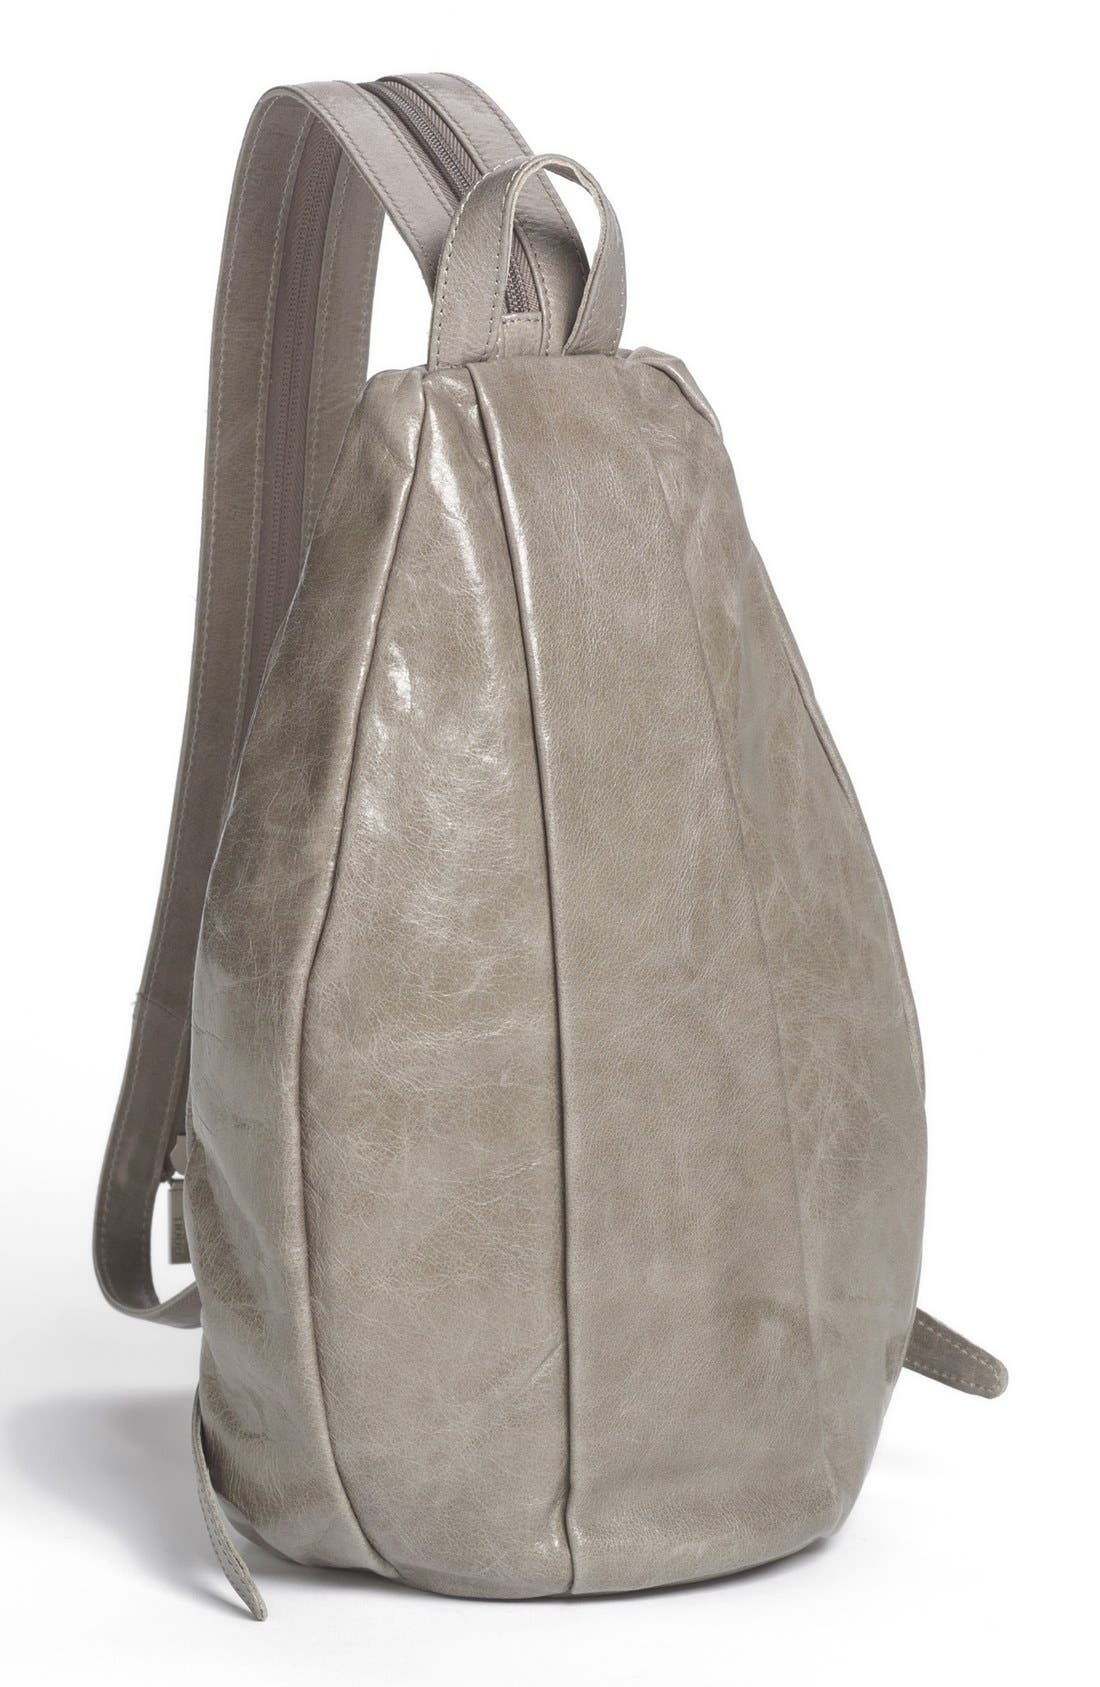 Main Image - Hobo 'Kiley' Convertible Backpack